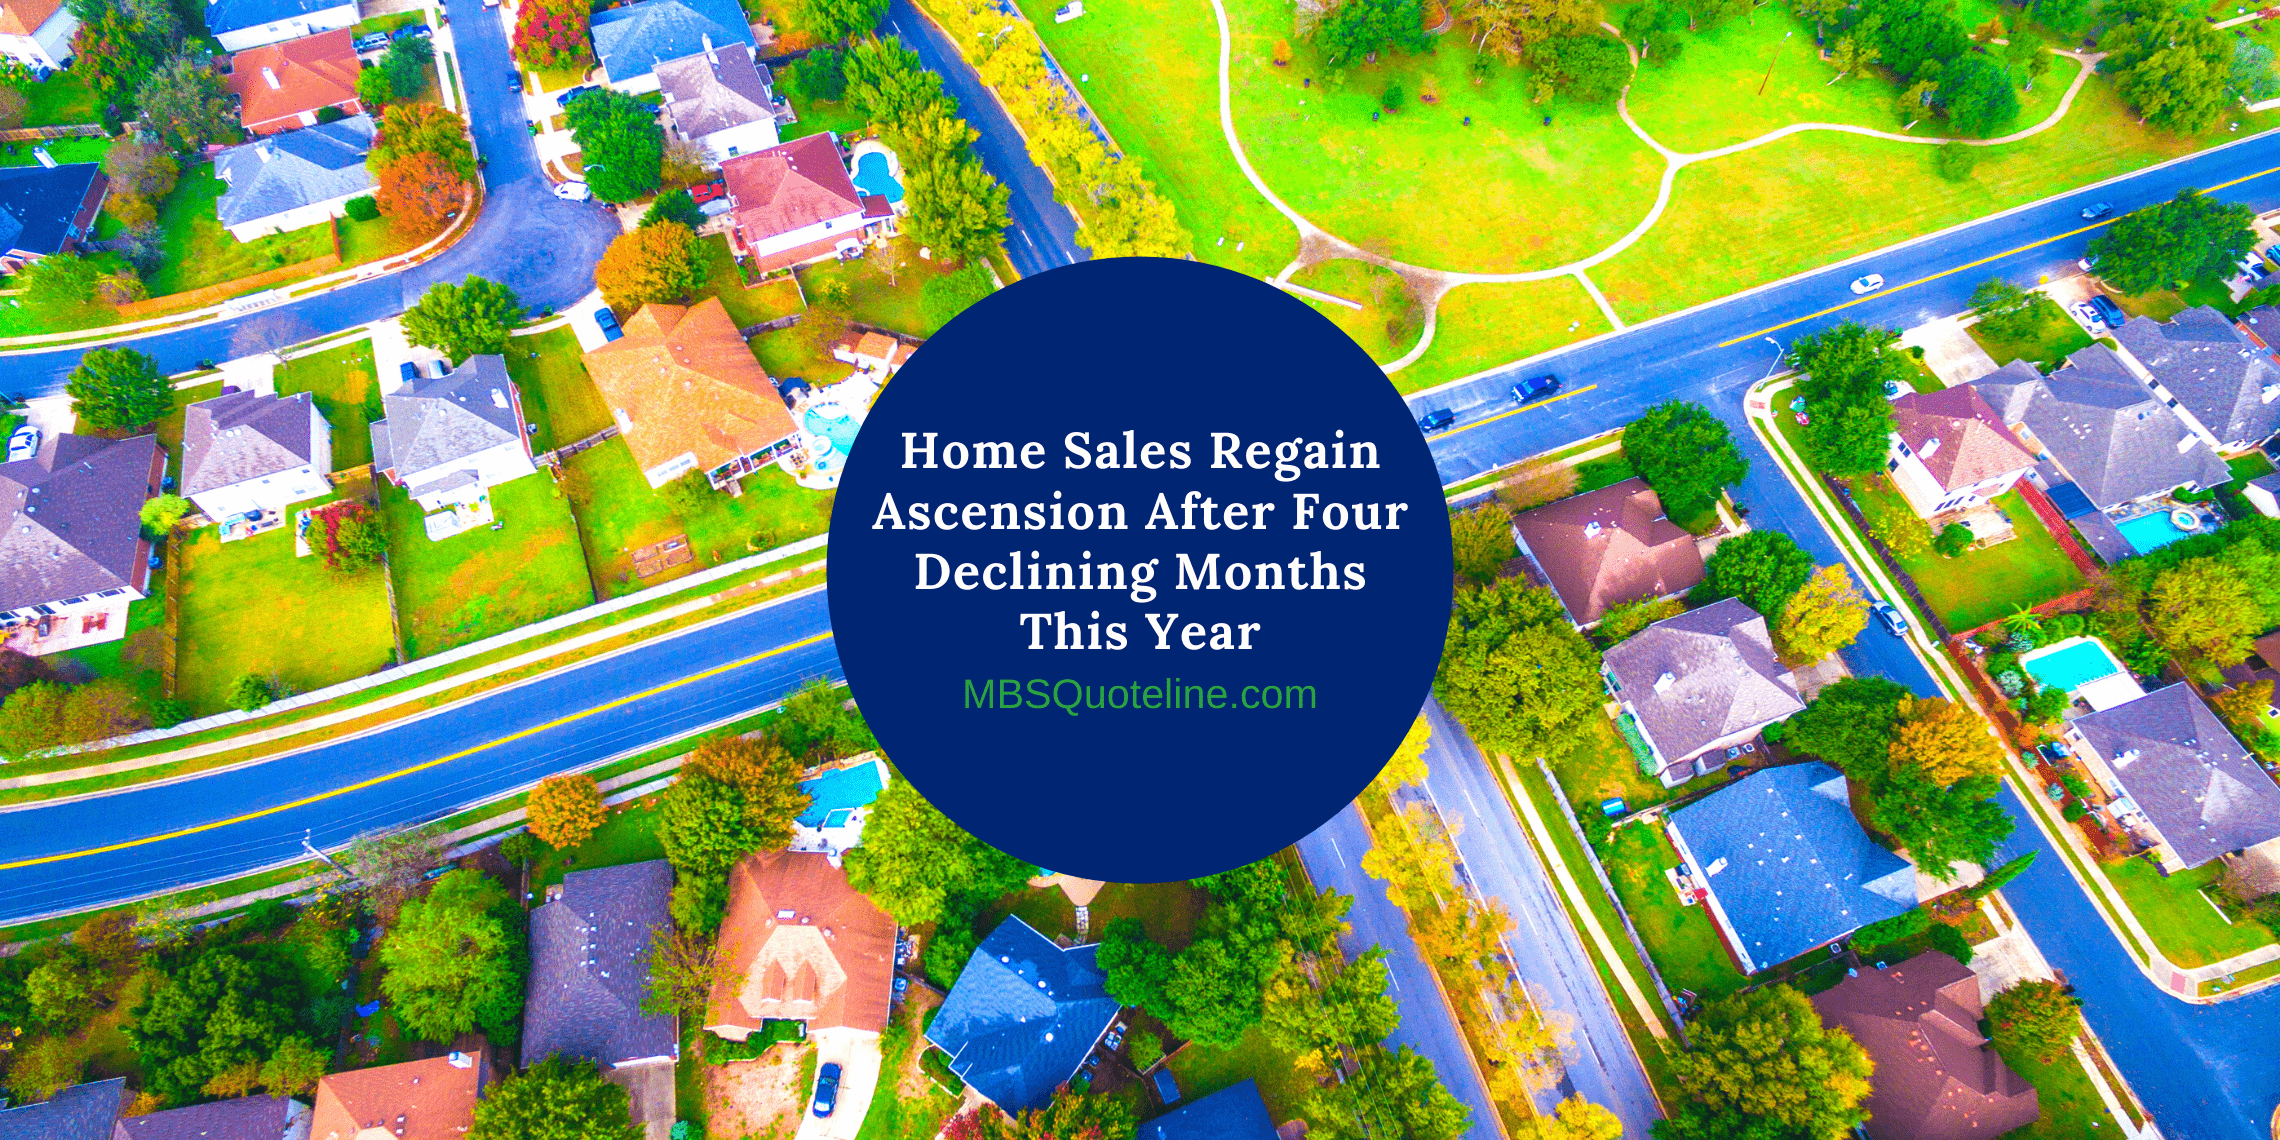 Home Sales Regain Ascension After Four Declining Months This Year mortgagetime mbsquoteline featured